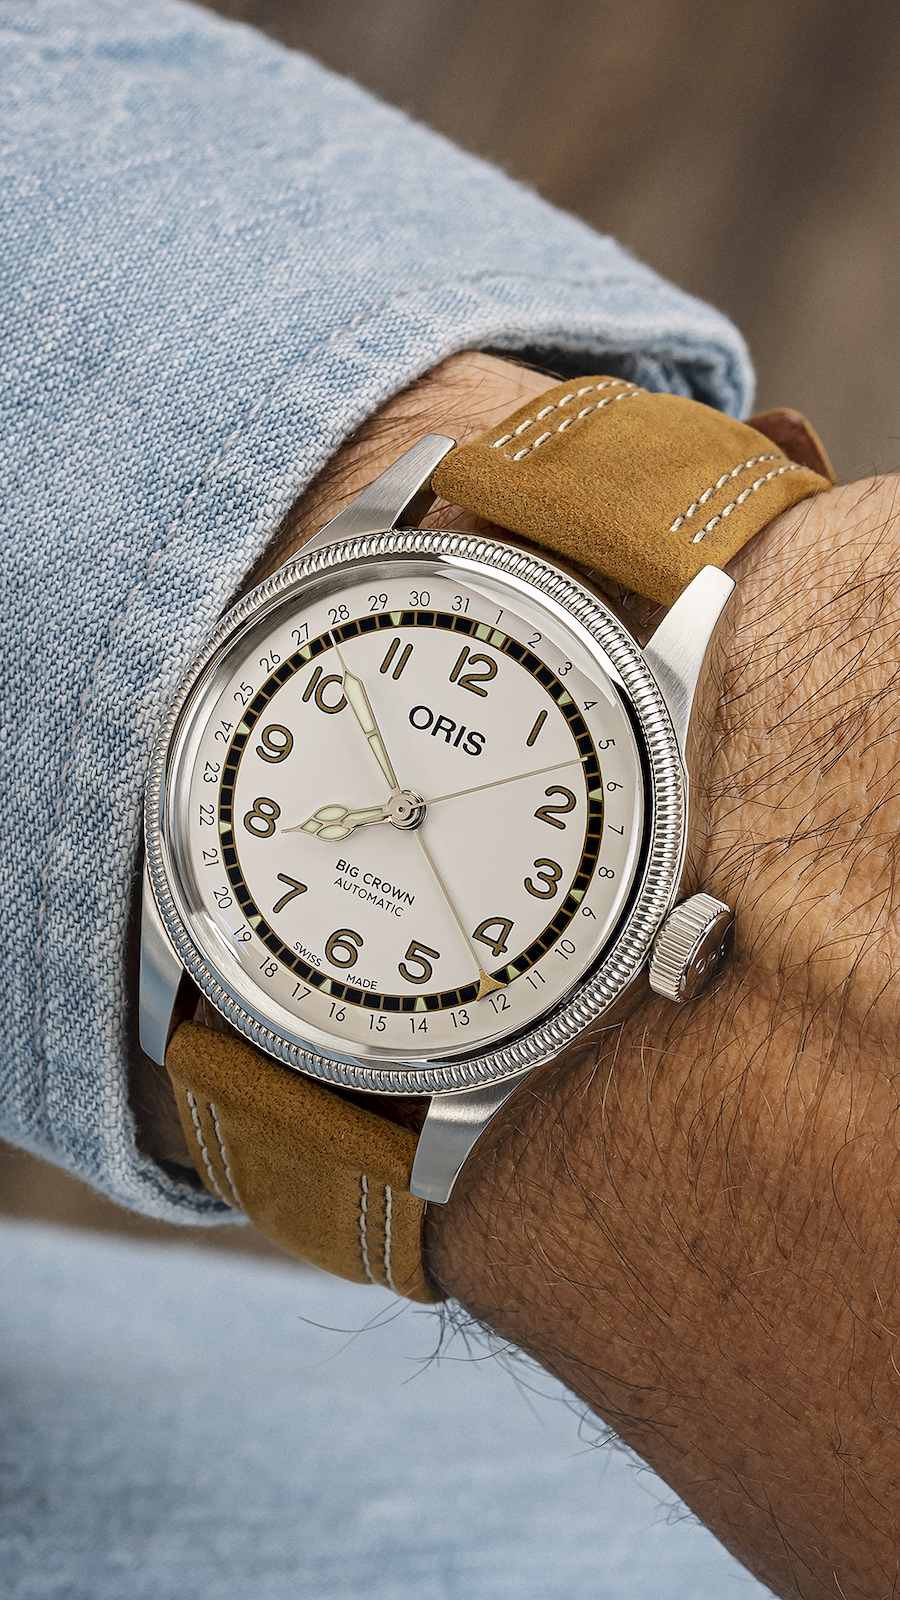 Oris Roberto Clemente Limited Edition Watch